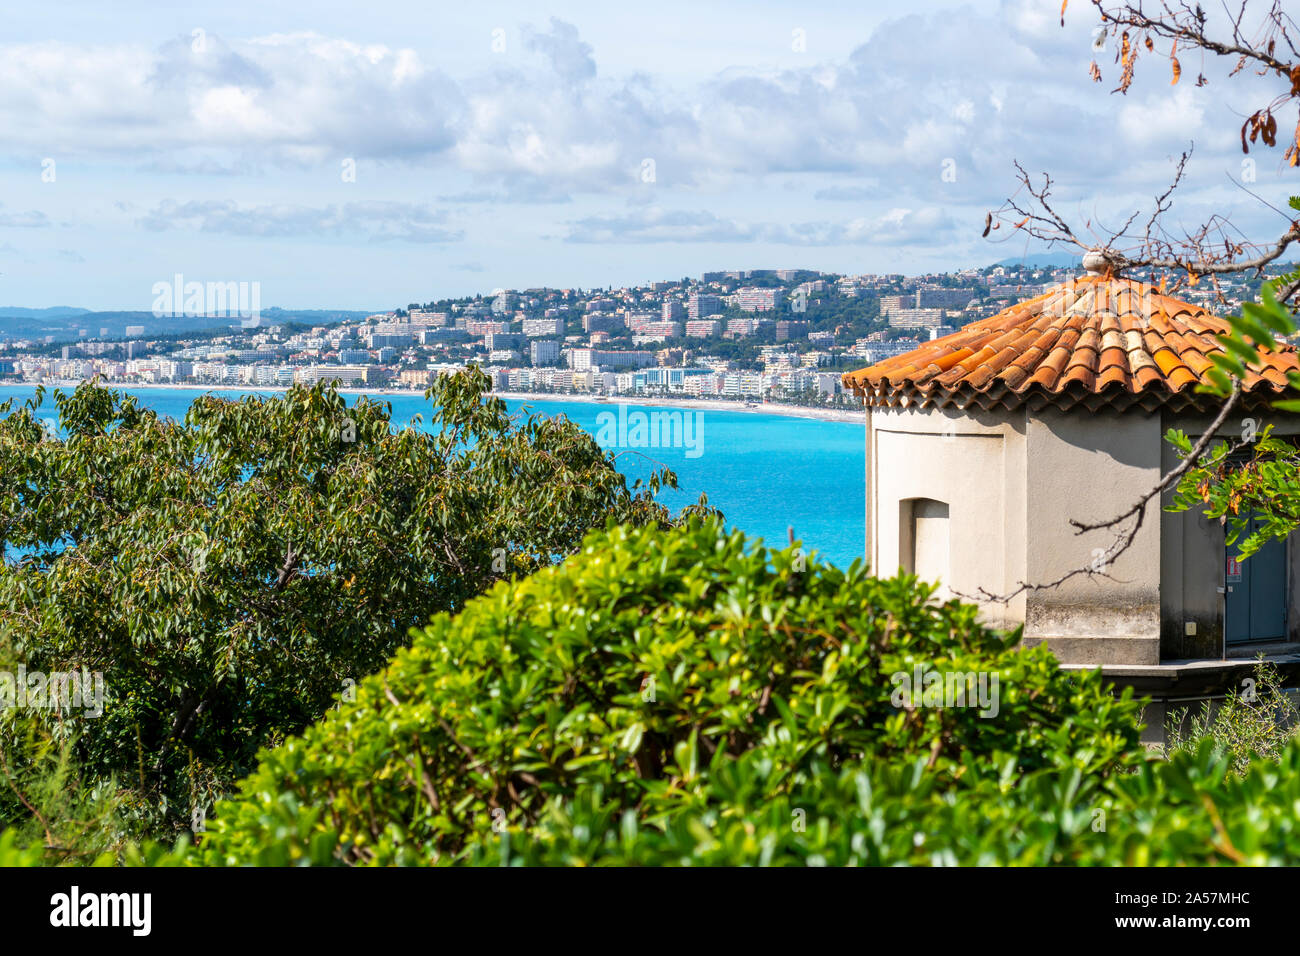 View of the turquoise Mediterranean Sea, beach, Bay of Angels, city and Castle Hill elevator from a lower lookout area on Castle Hill in Nice France Stock Photo